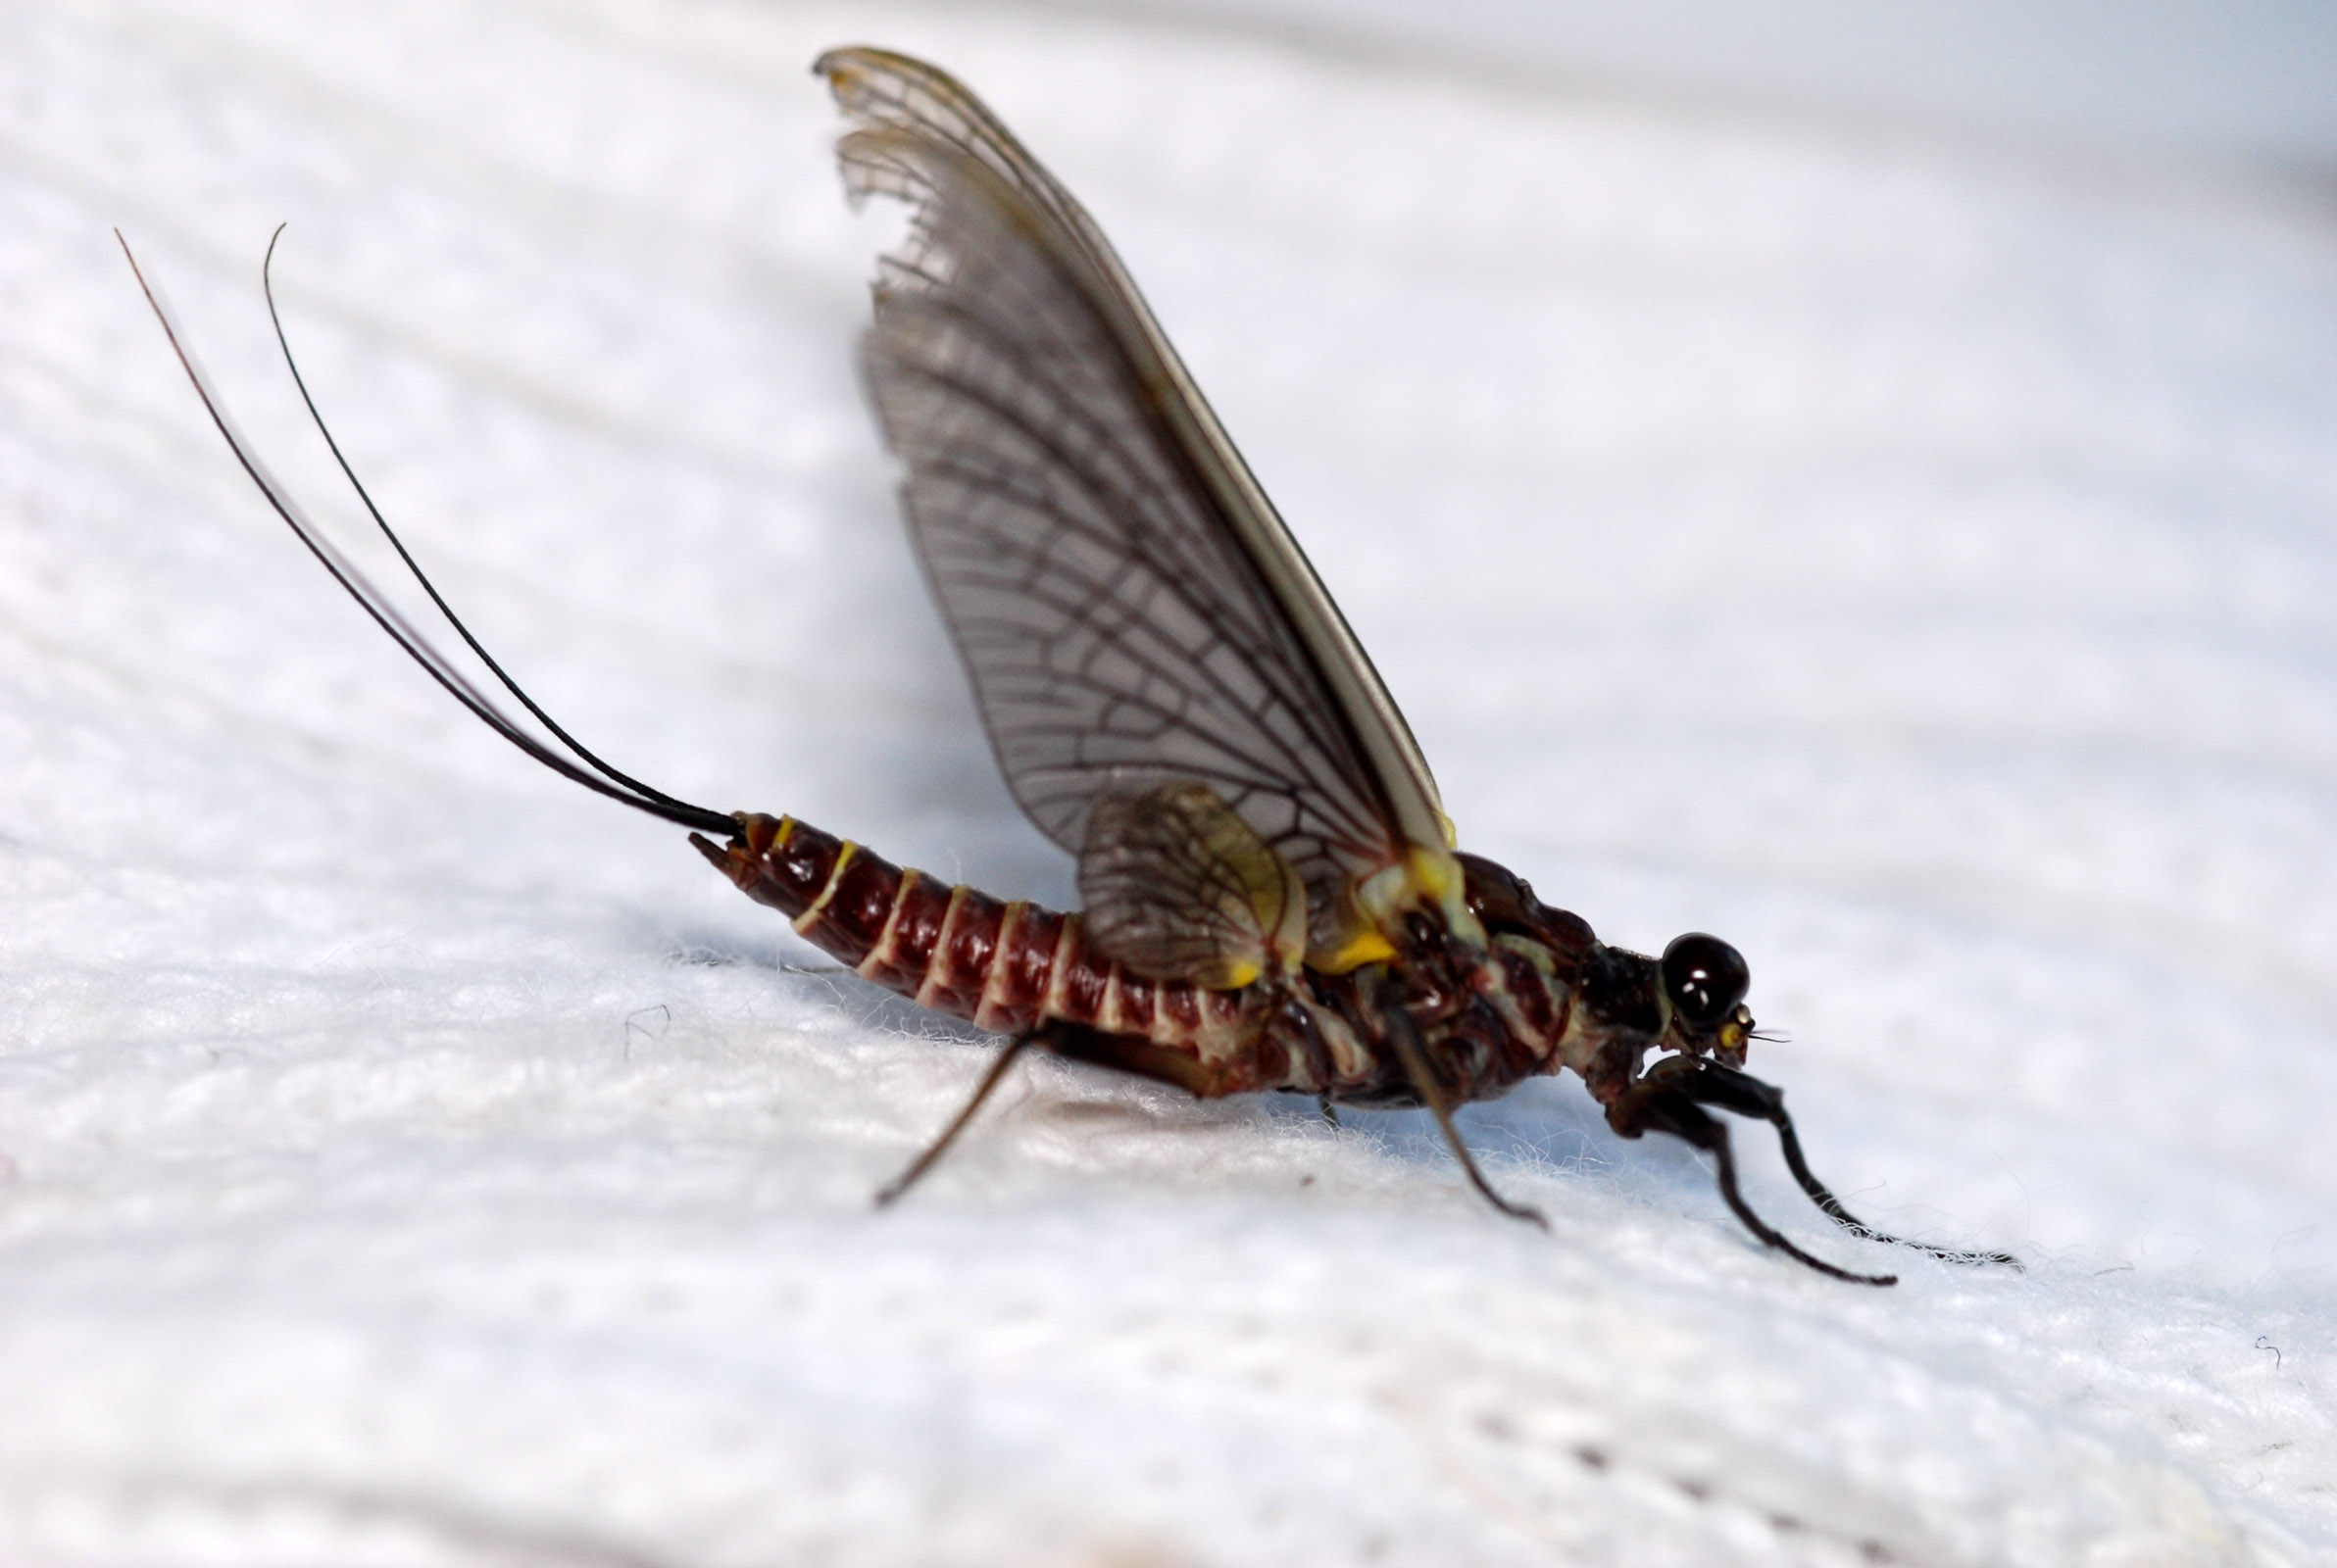 Drunella grandis (Western Green Drake) Mayfly Adult from Rock Creek in Montana